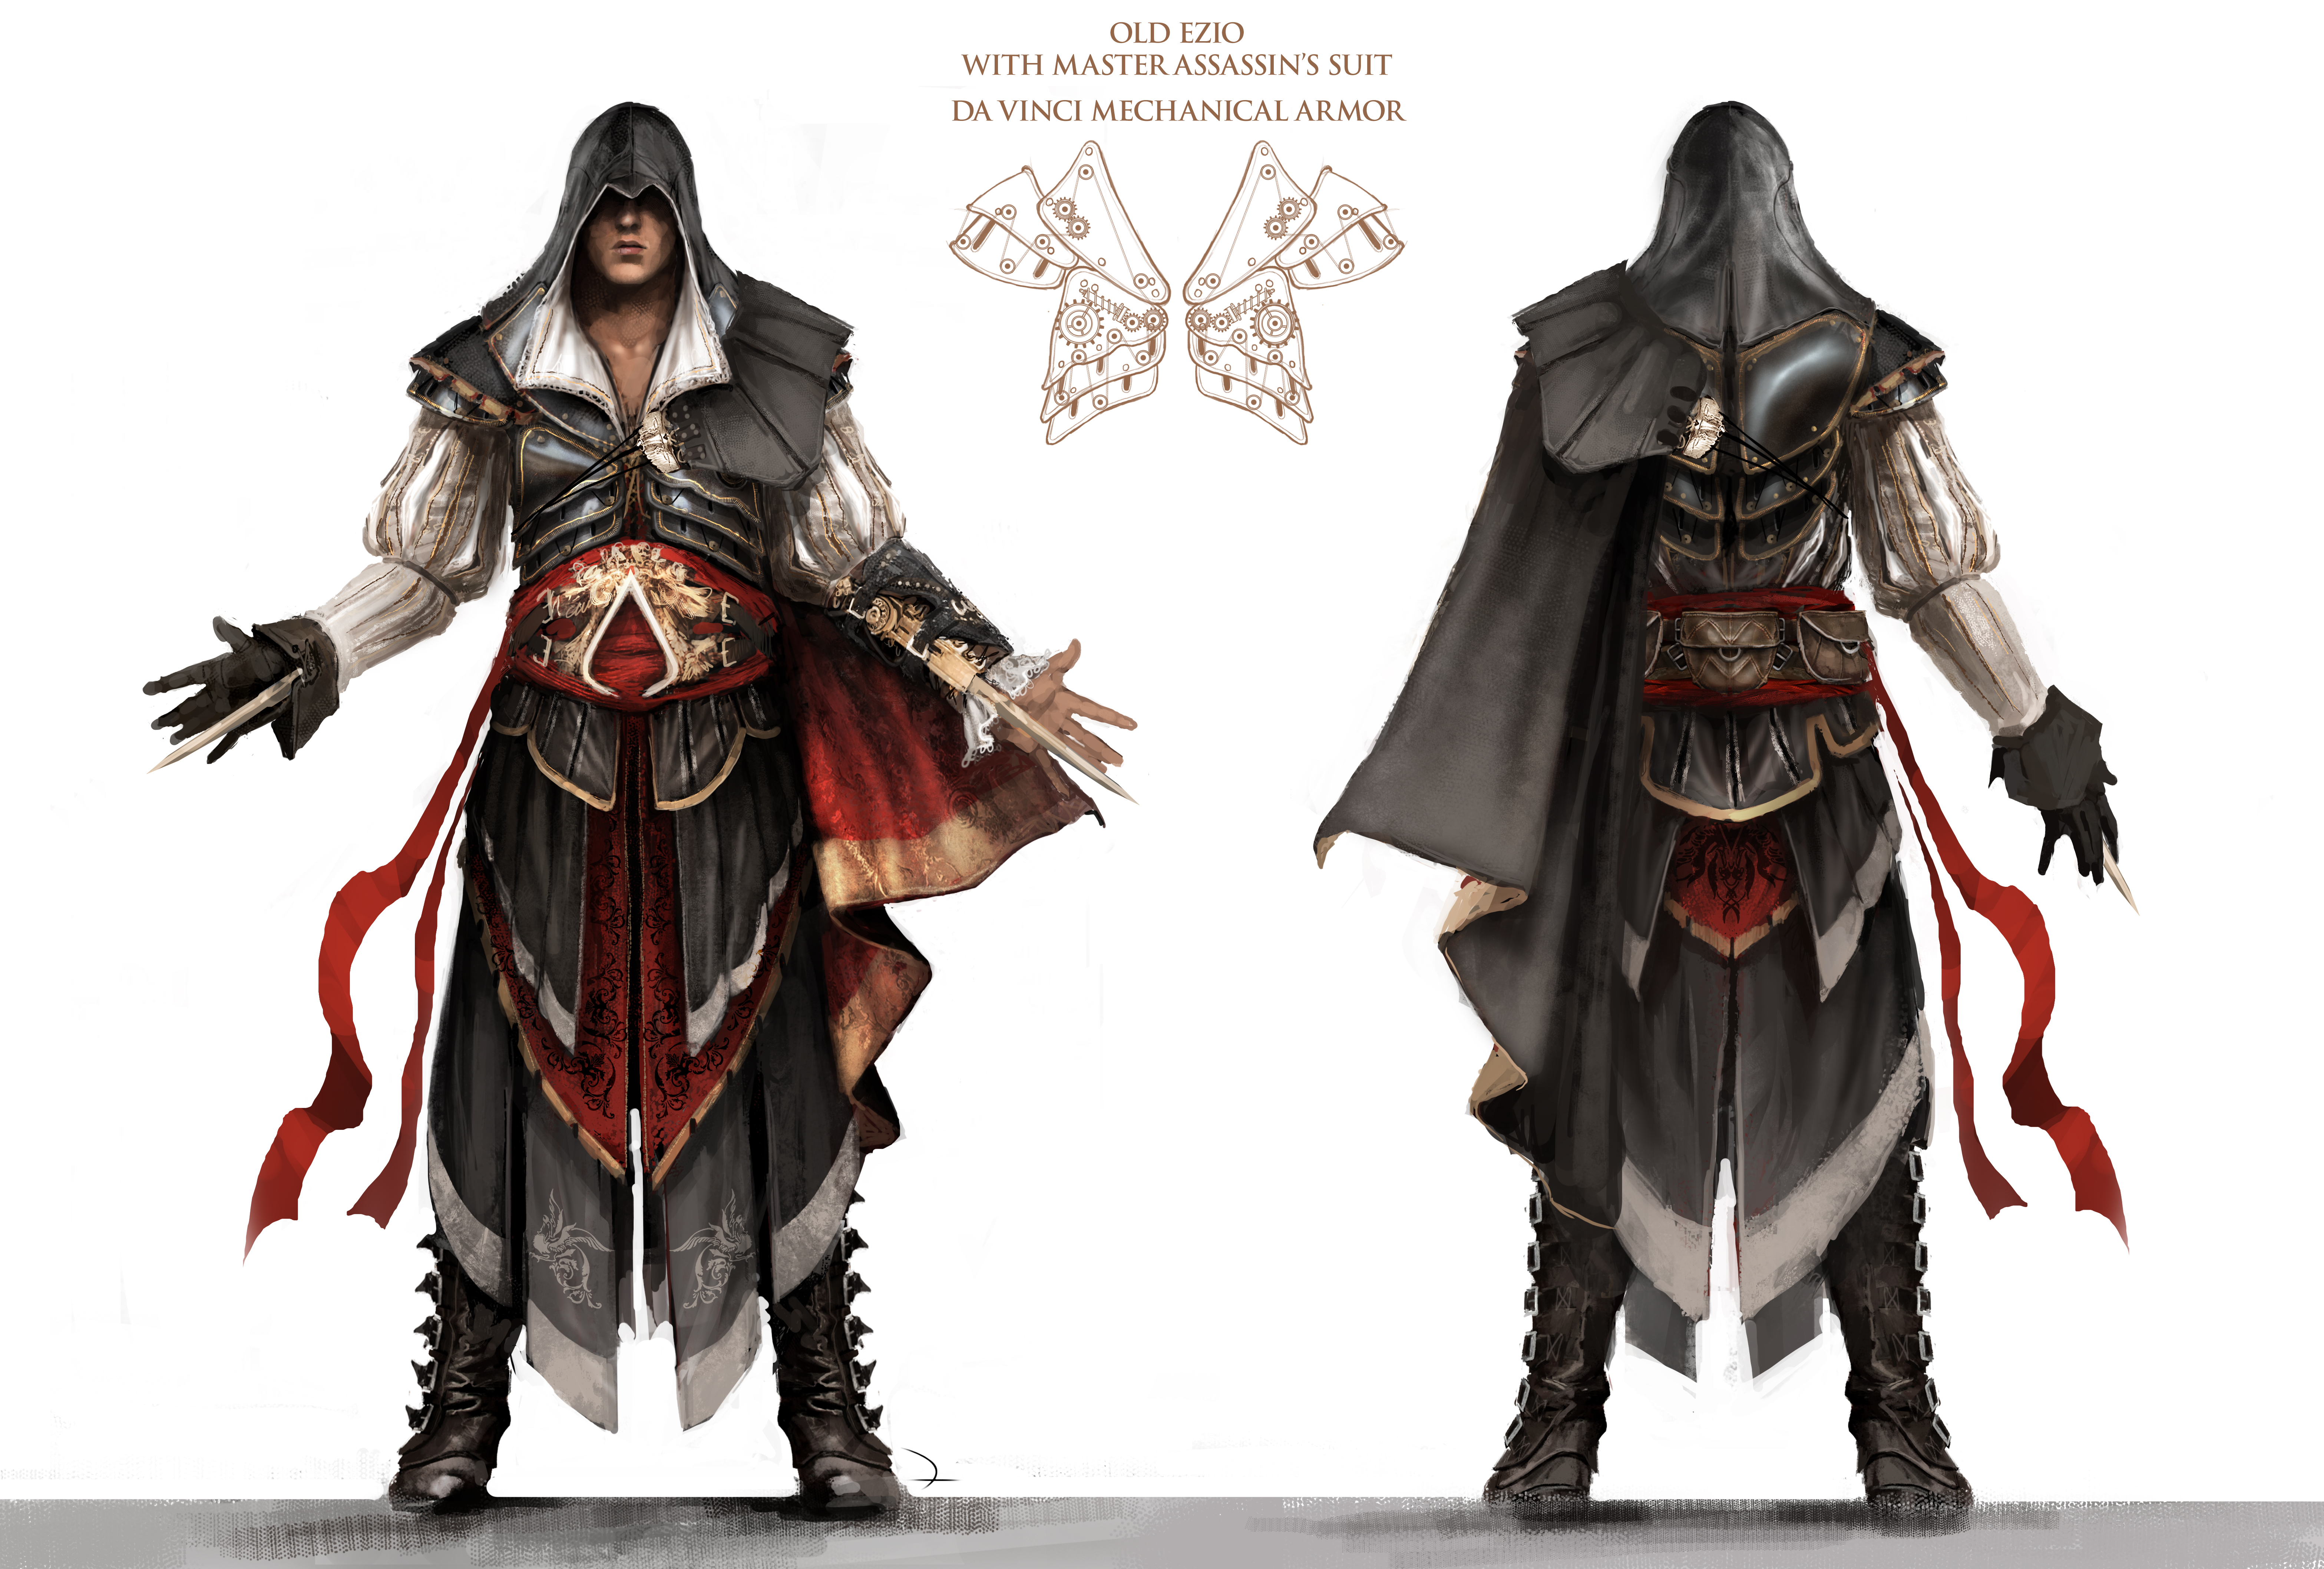 Assassins Creed Armor/Robes  Steam Users Forums